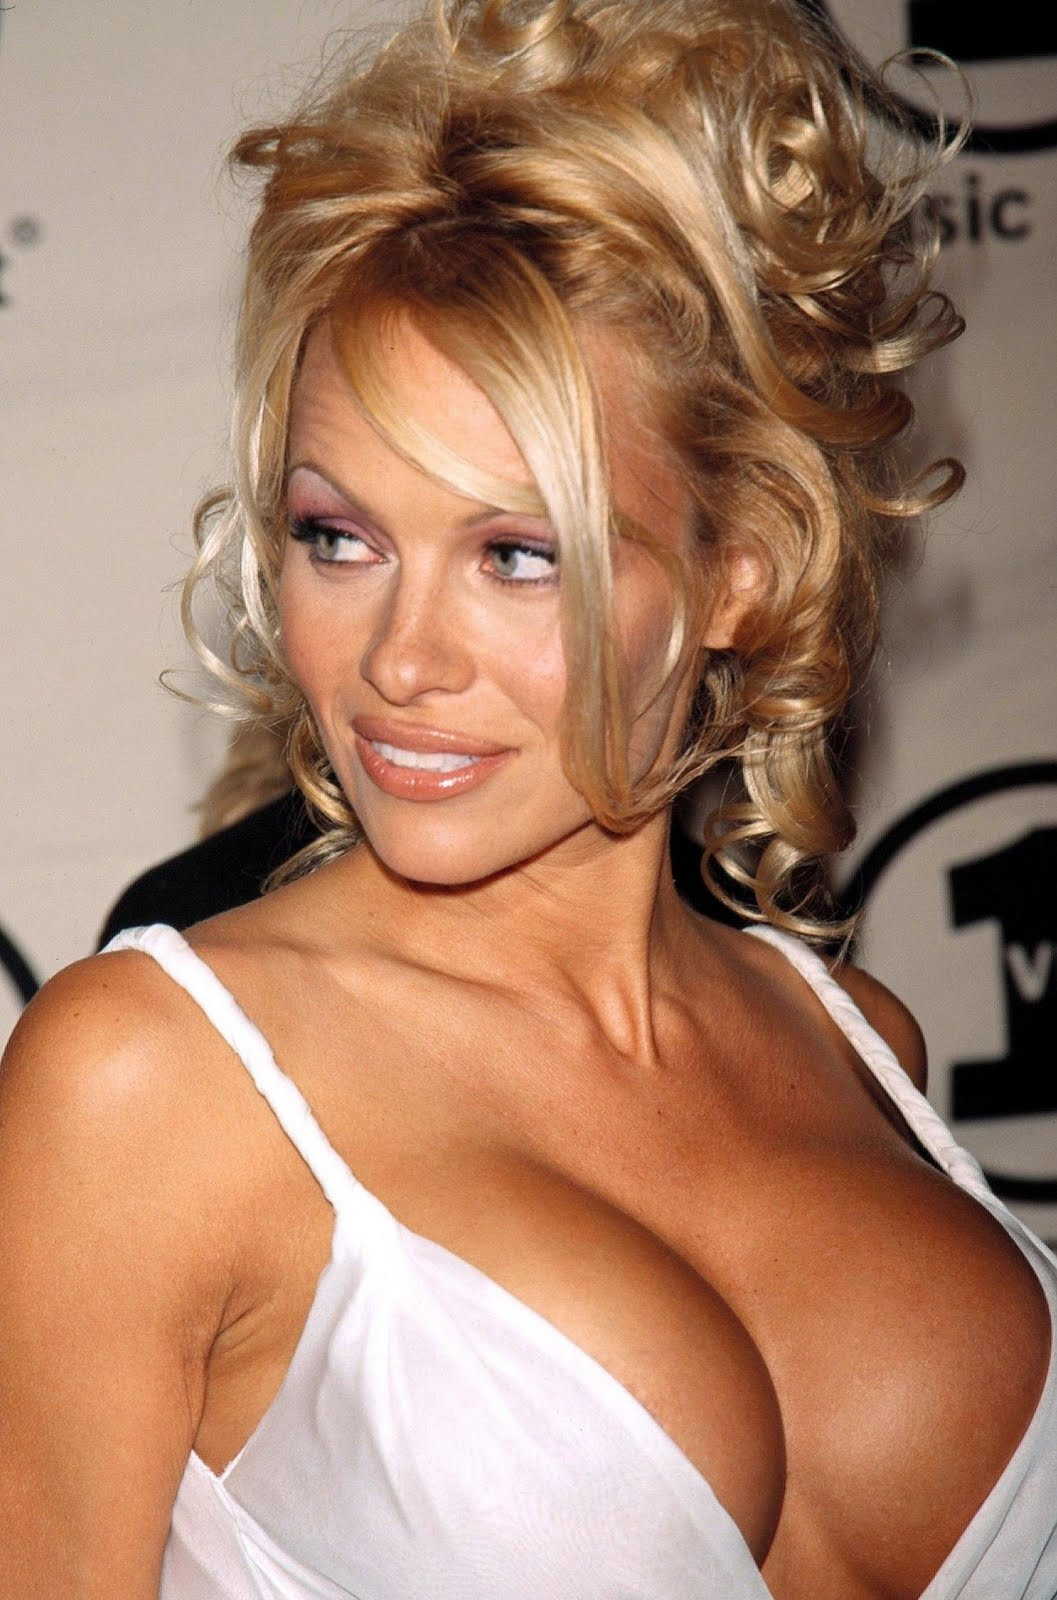 Hollywood Actress Pamela Anderson Hot Pics, Pamela -3436